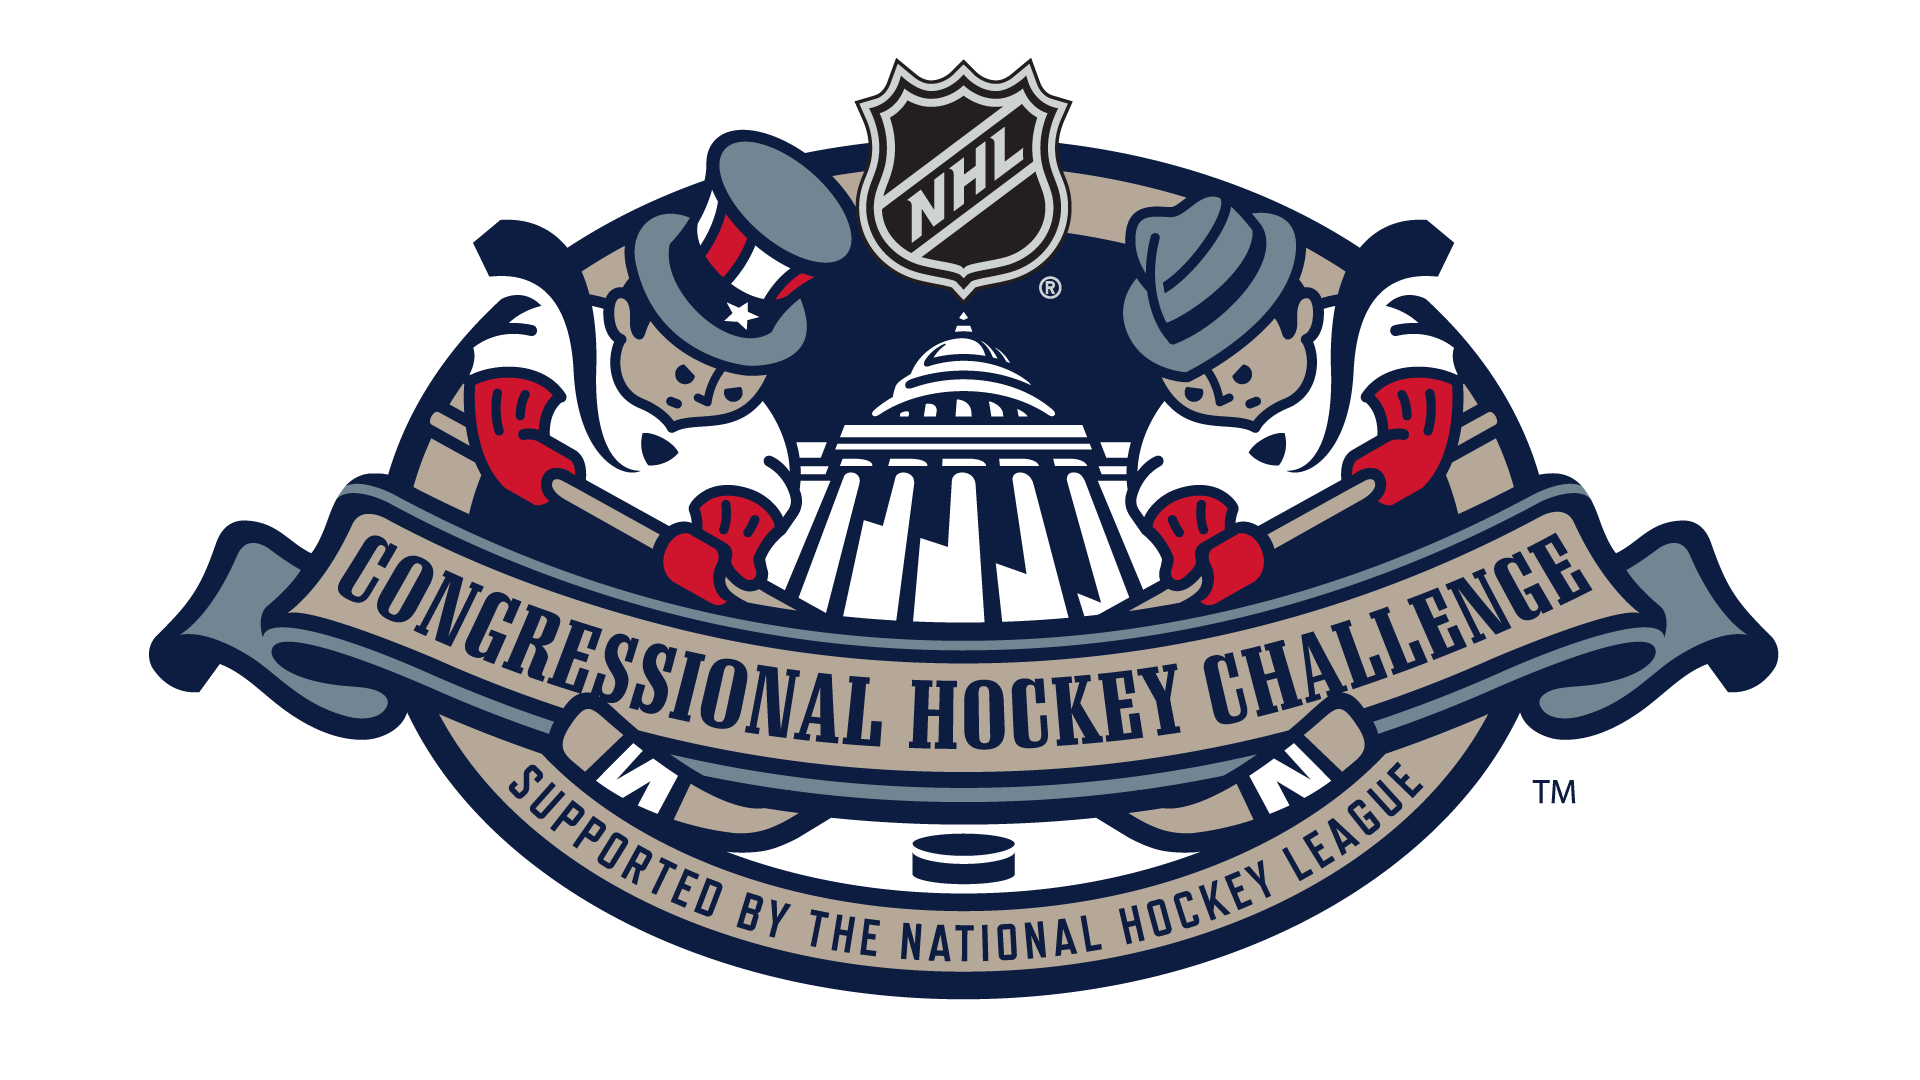 11th Annual Congressional Hockey Challenge